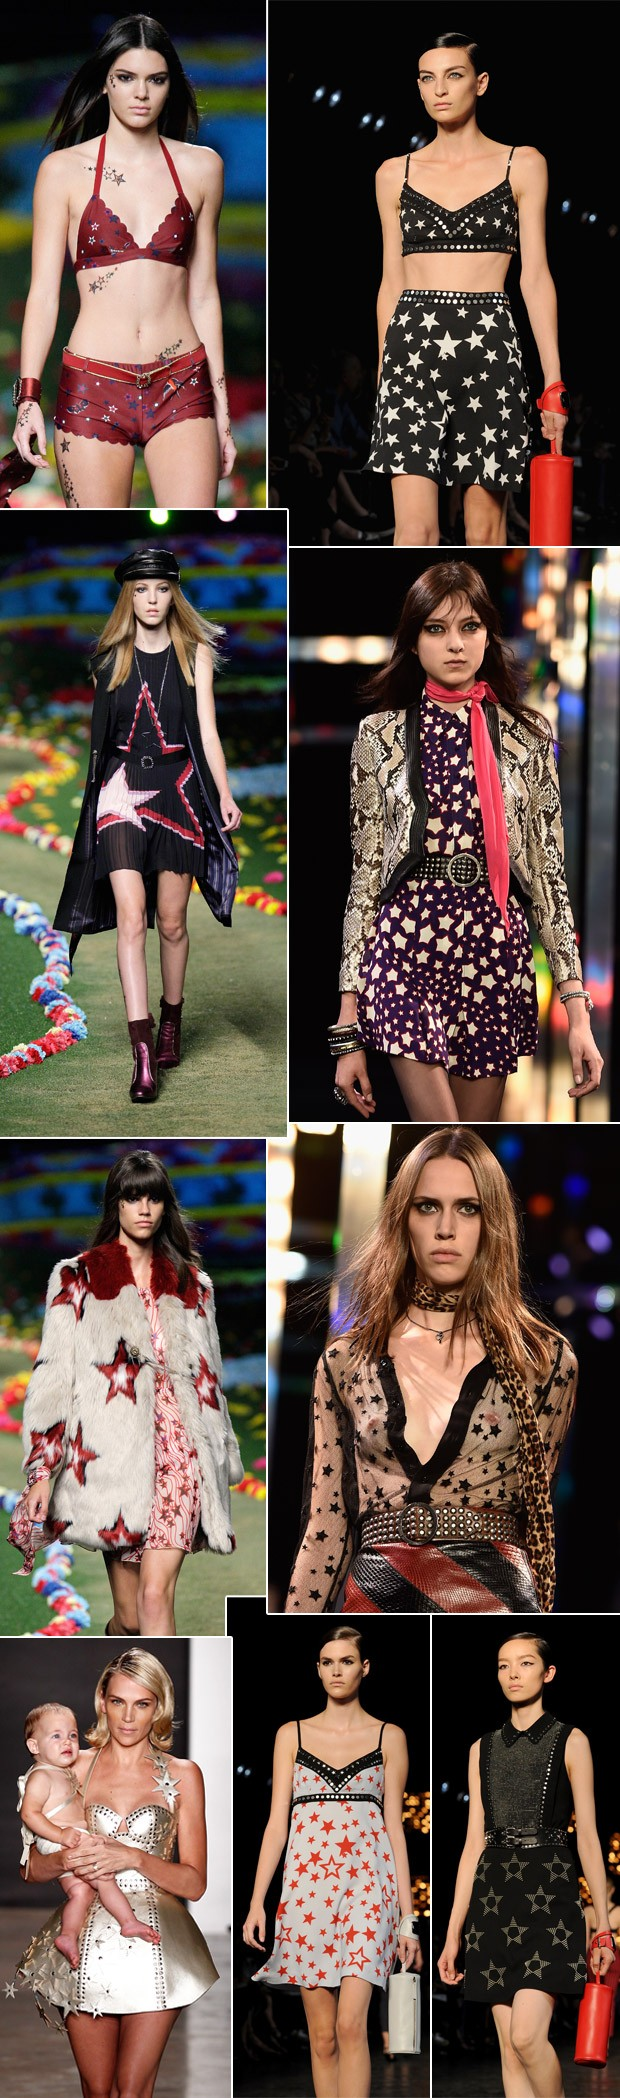 Desfiles de vero 2015 de Saint Laurent Paris, Zana Bayne, Tommy Hilfiger e Diesel Black Gold. (Foto: Getty Images)